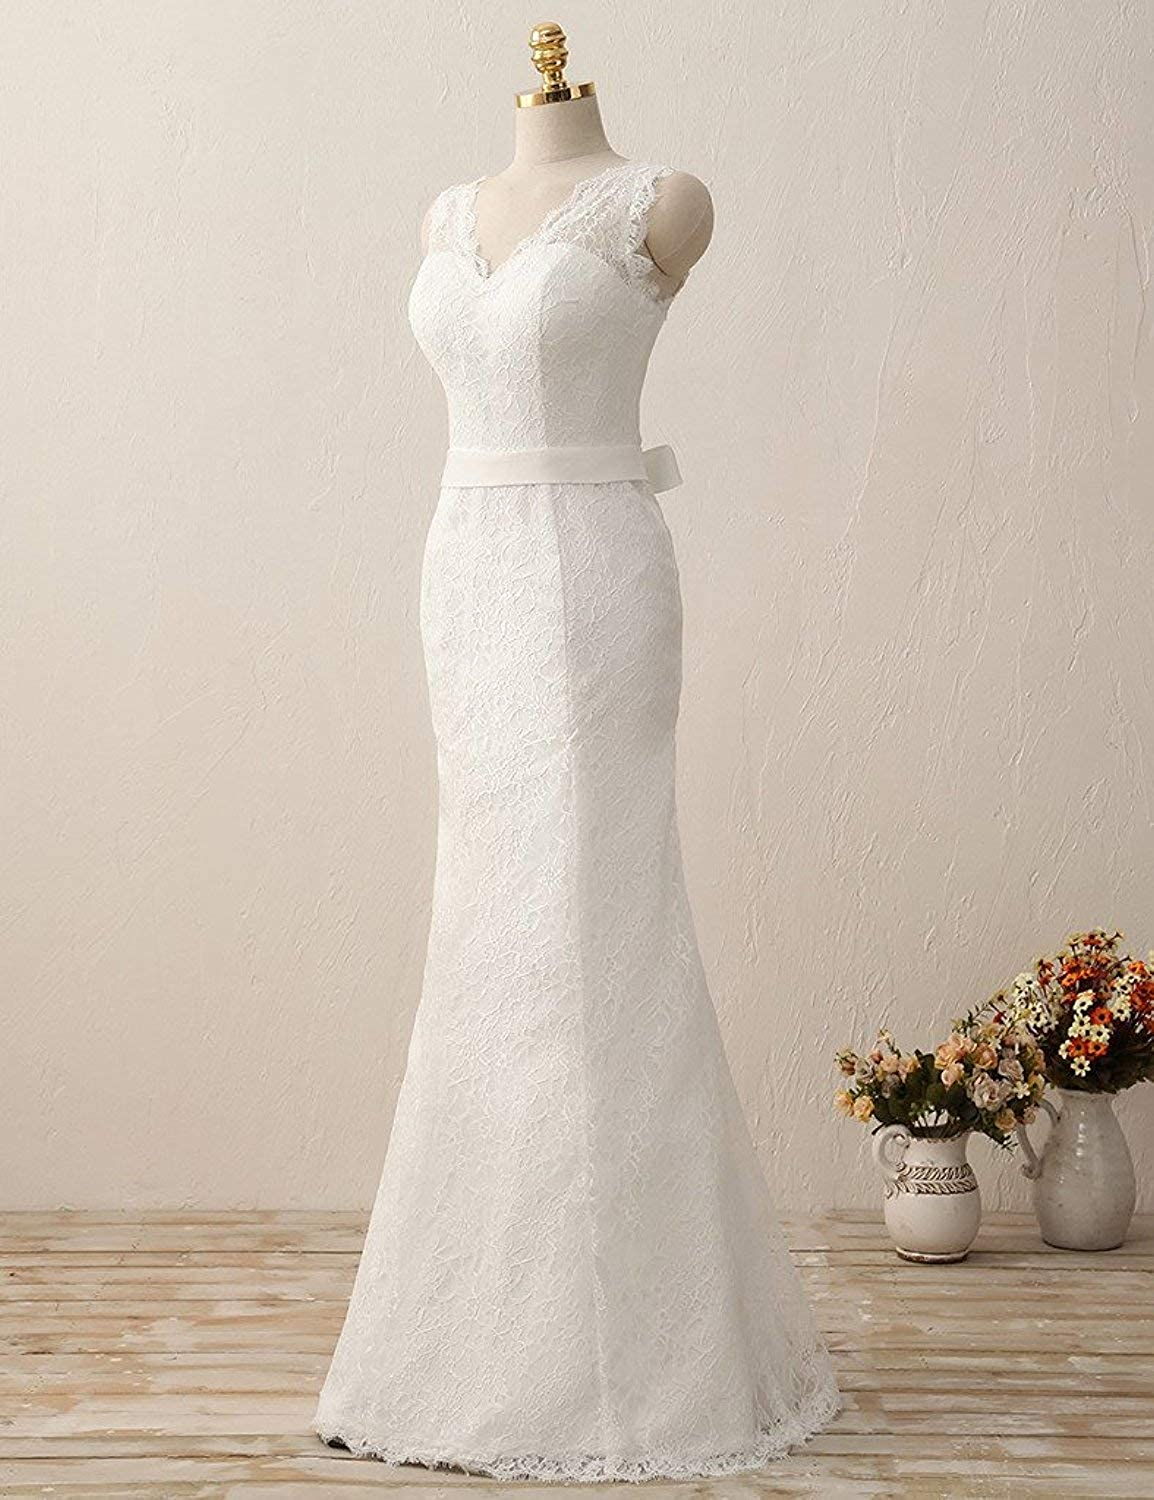 Wedding Dress for Bride Lace Bridal Gown Mermaid Wedding Gowns with Sash V Neck